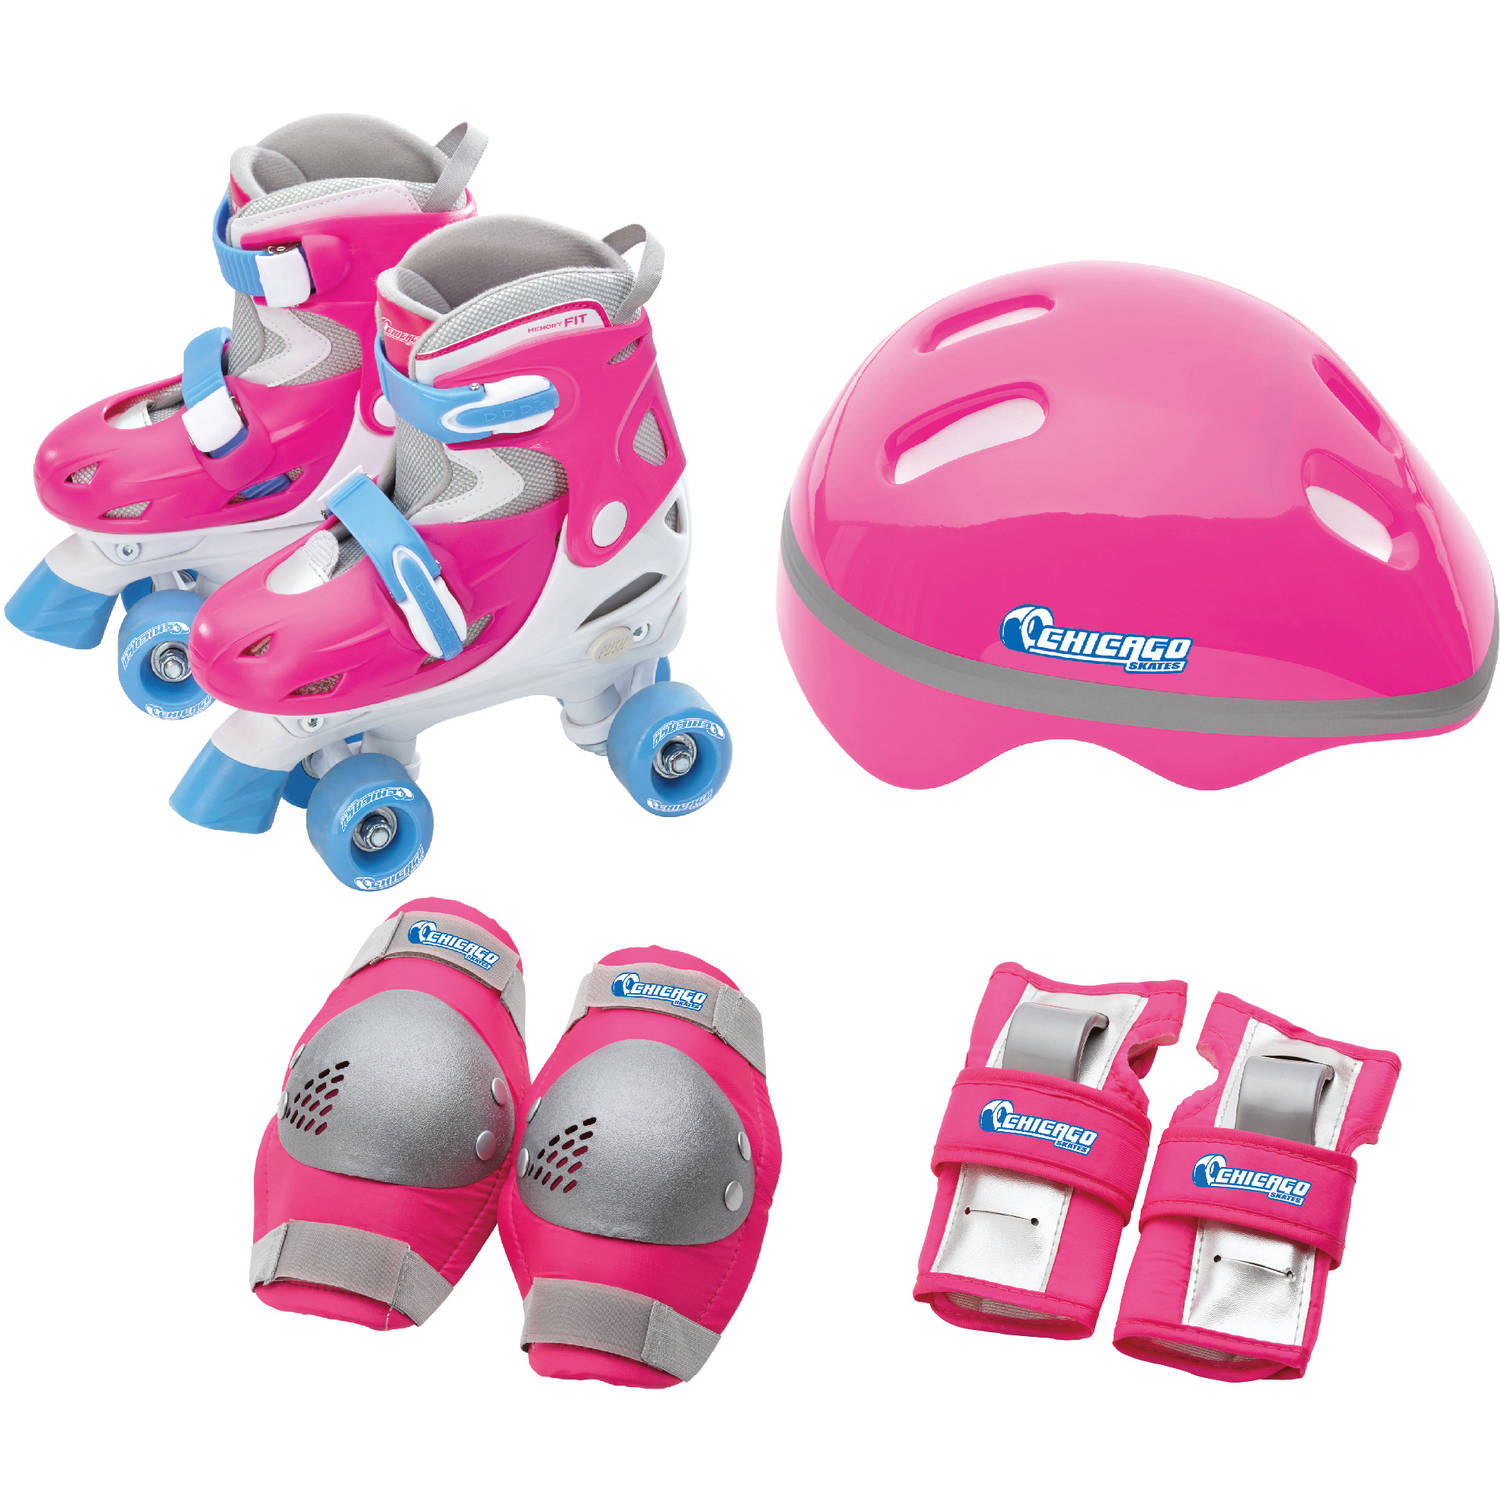 Chicago Girls' Adjustable Quad Combo, Size J10-J13